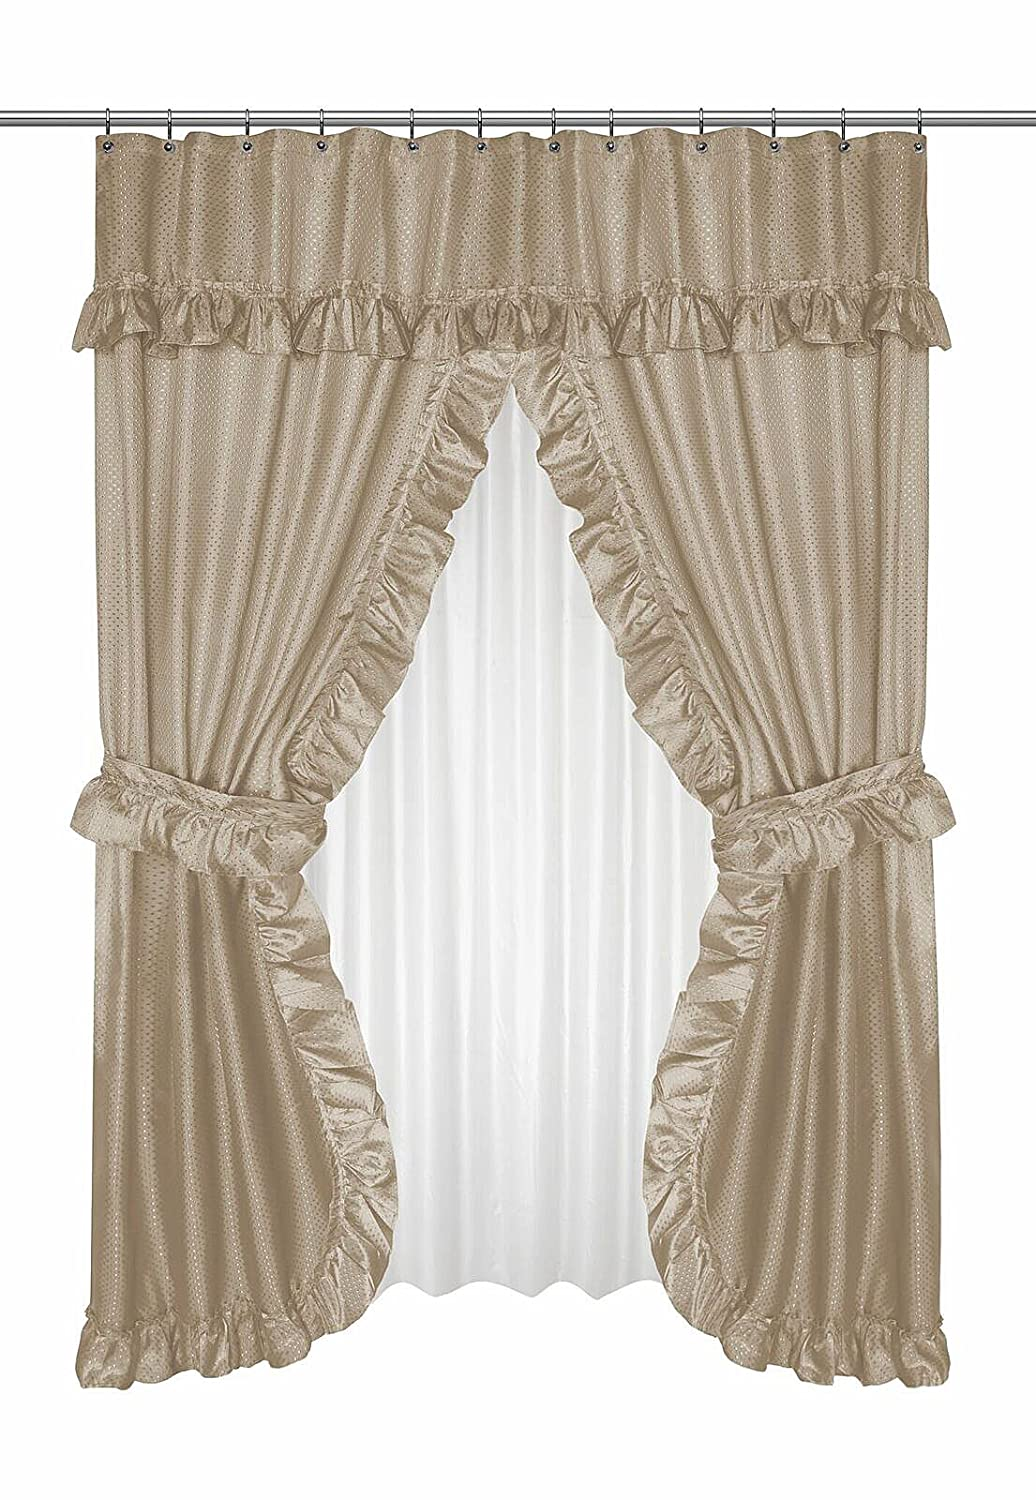 Amazon Home Bargains Plus Diamond Dot Ruffled Double Swag Fabric Shower Curtain With Valance And Liner